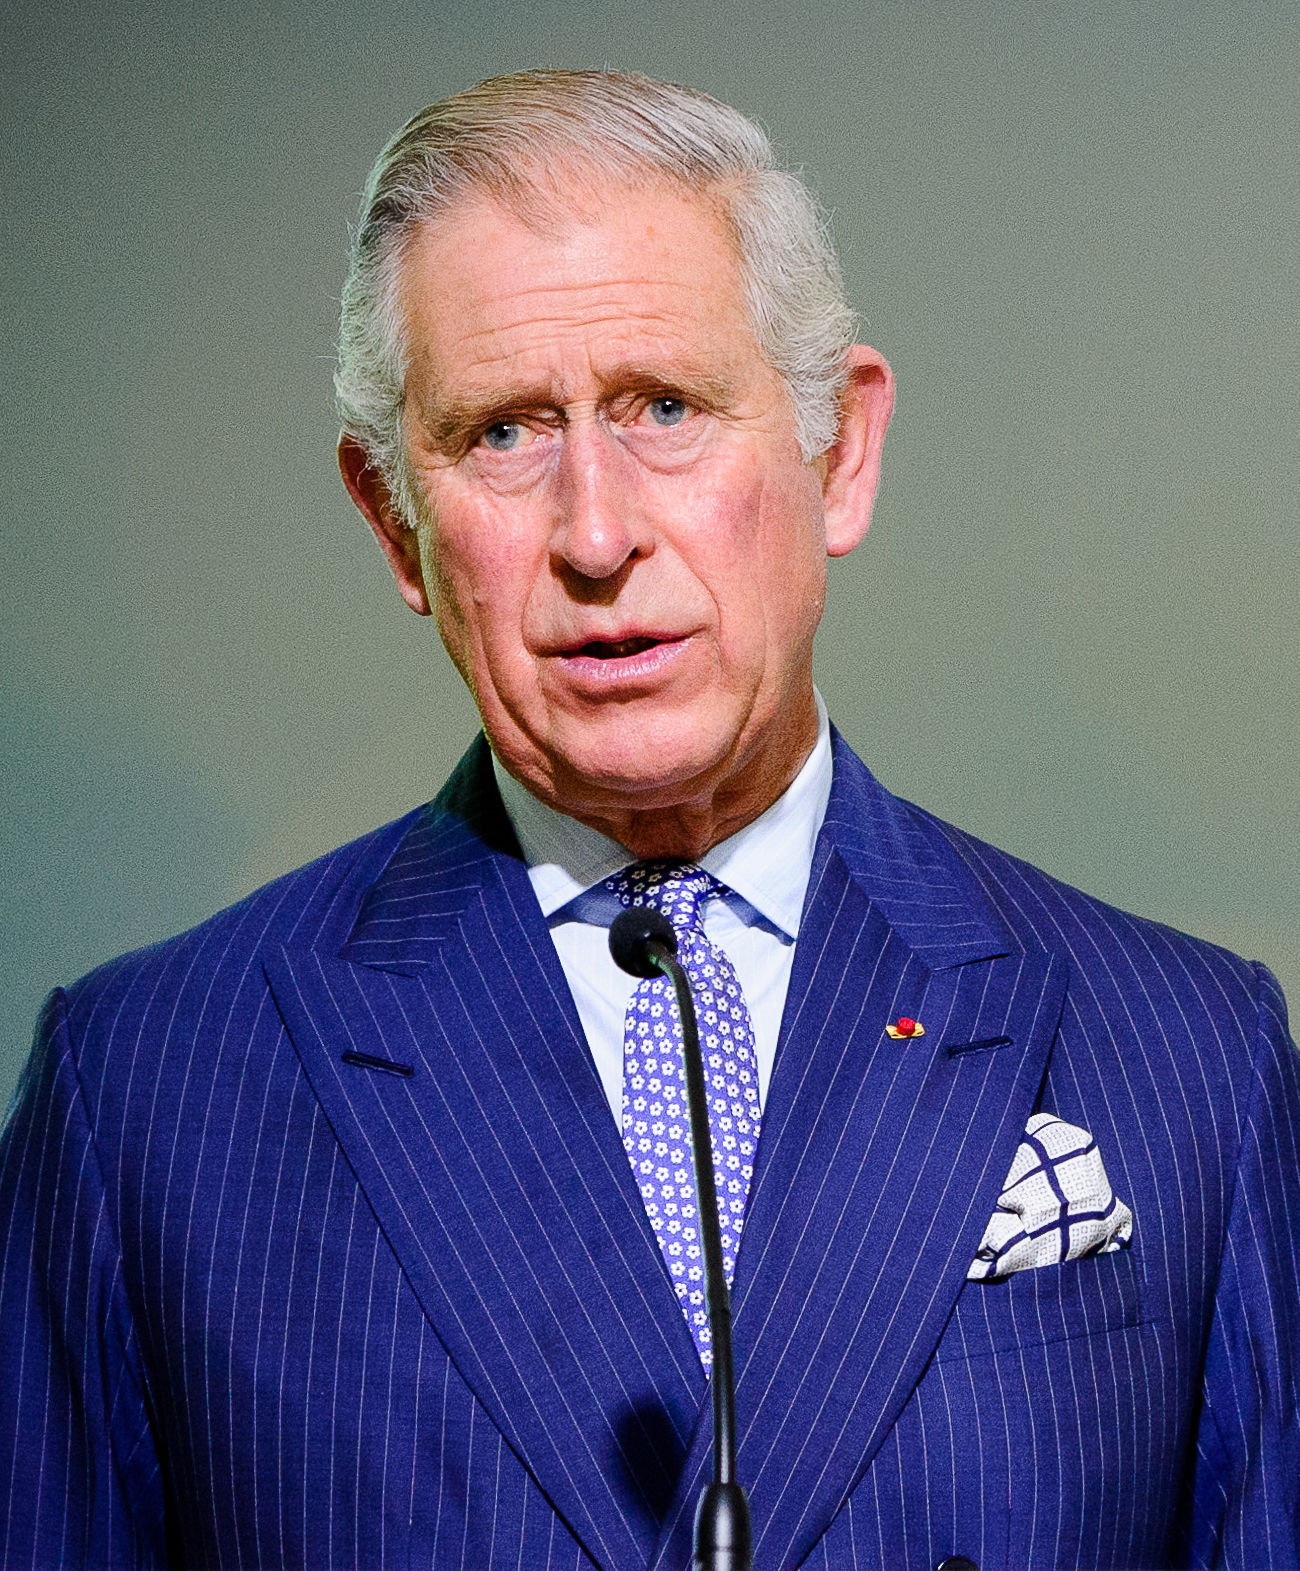 Photo of Charles, Prince of Wales: Son of Queen Elizabeth II of the United Kingdom